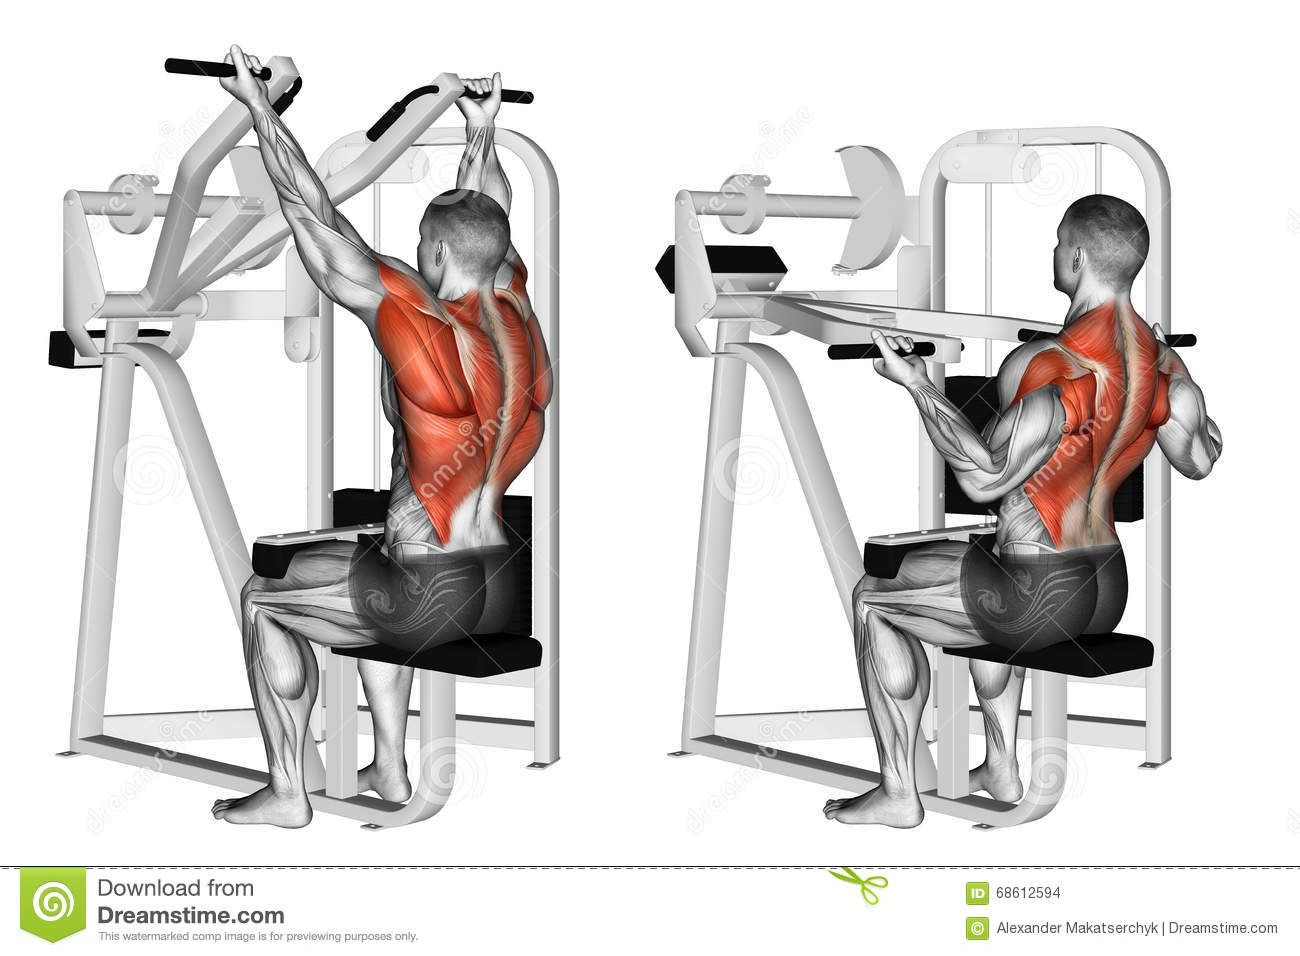 Exercising Reverse Grip Machine Lat Pulldown Download